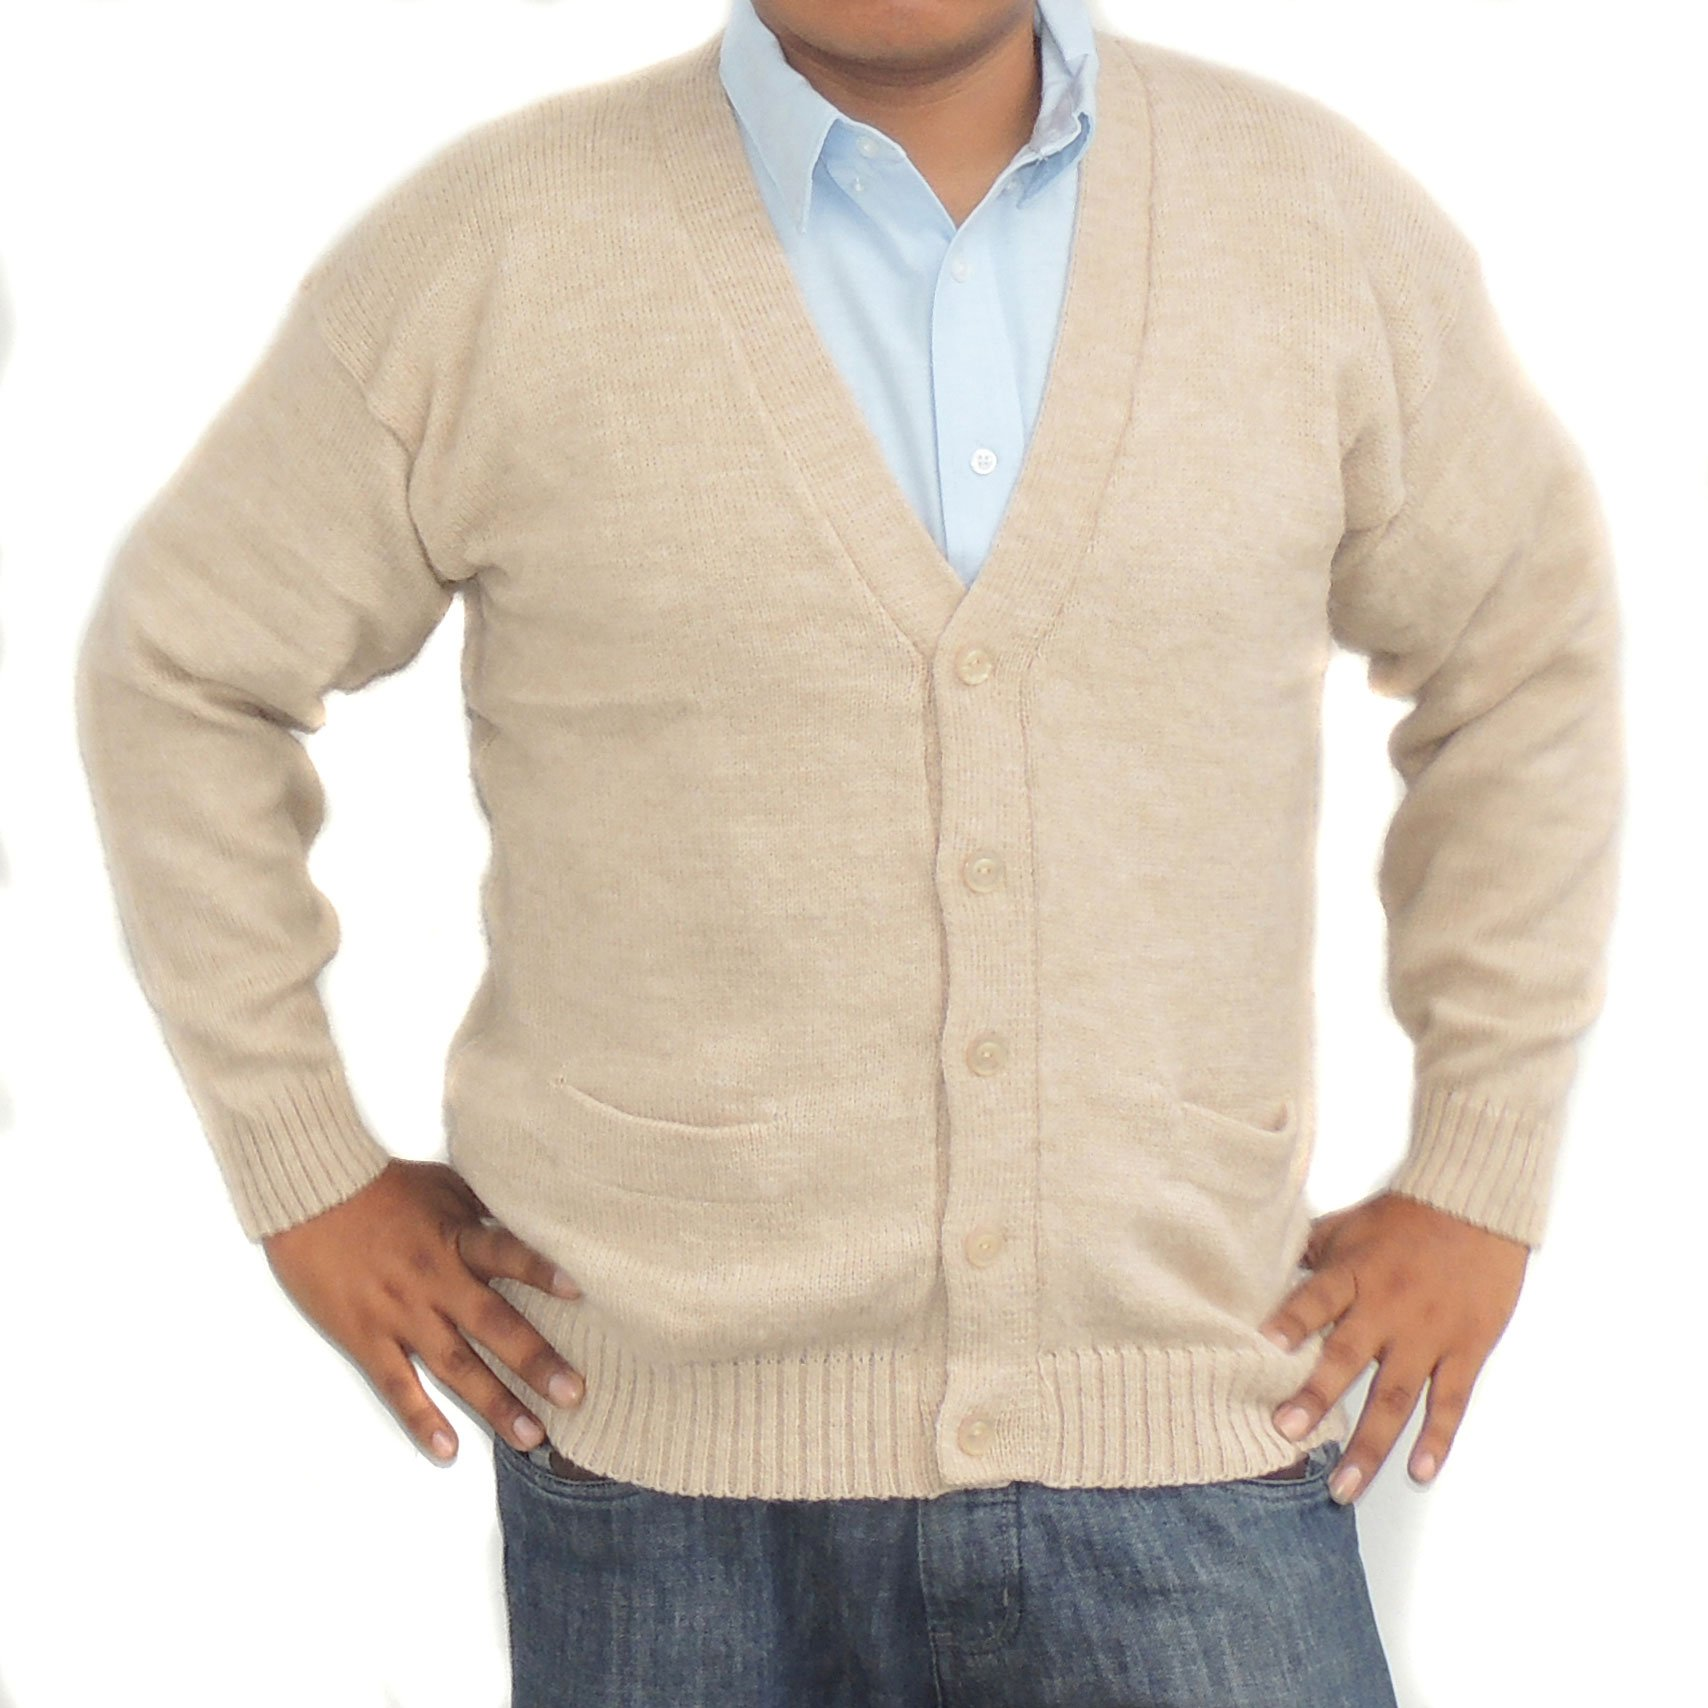 ALPACA CARDIGAN GOLF SWEATER JERSEY V neck buttons and Pockets made in PERU BEIGE L